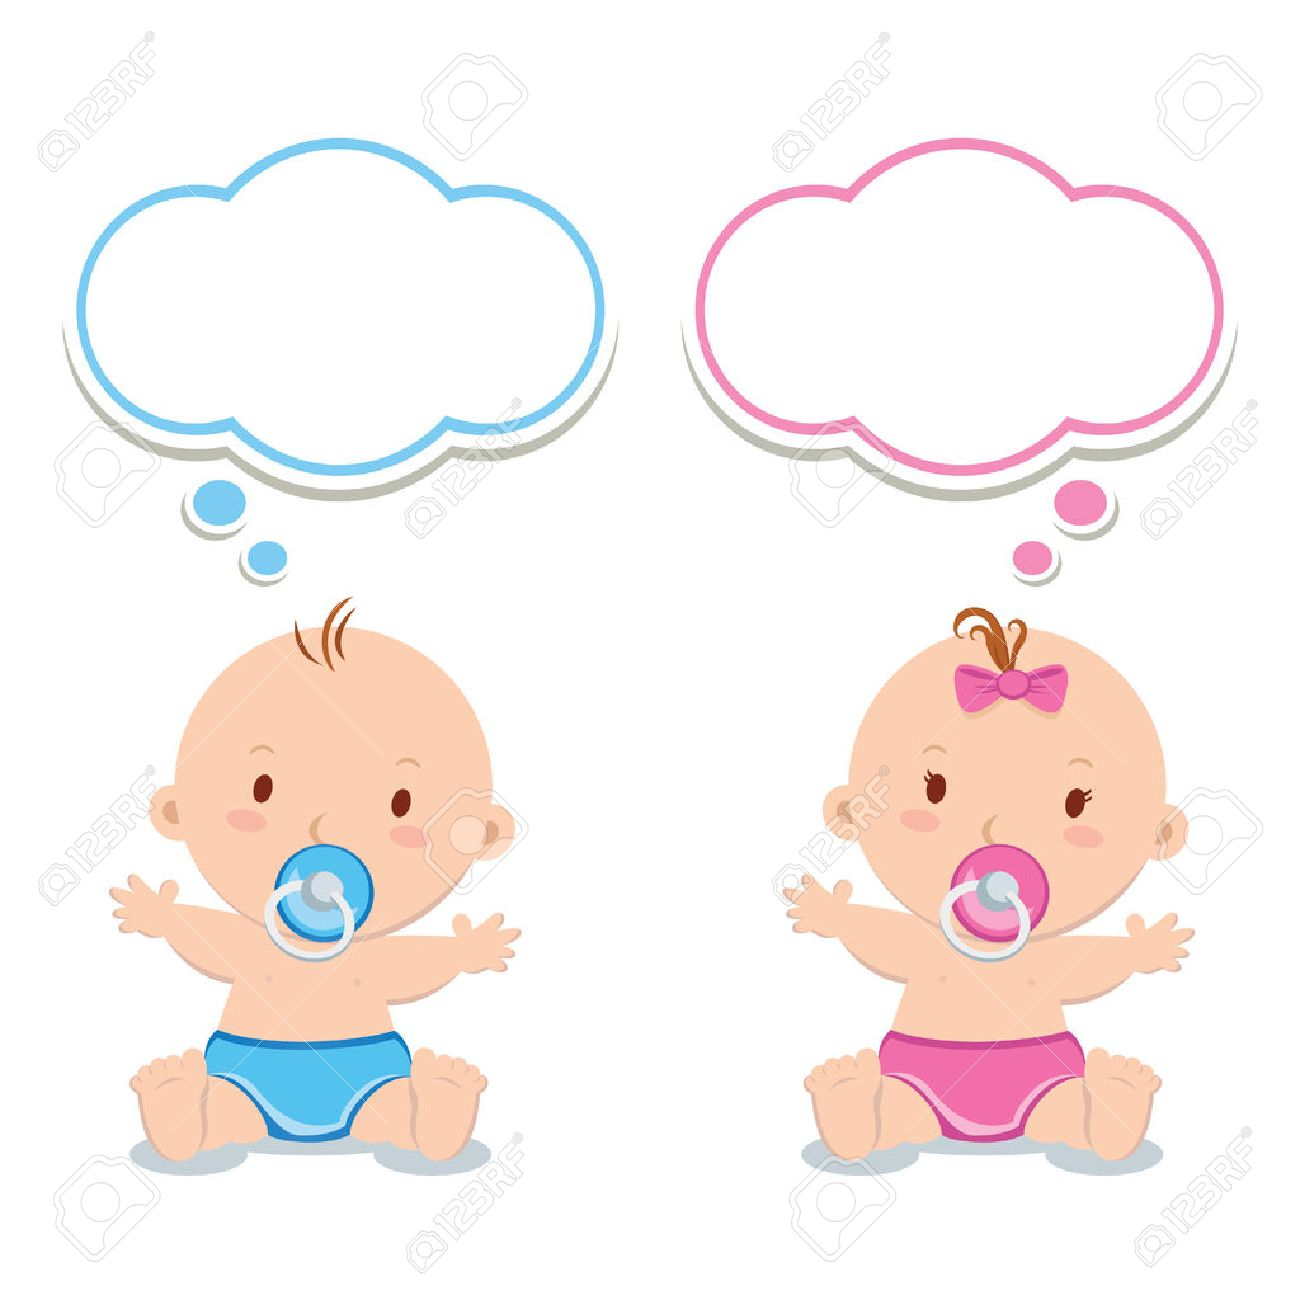 72a576472 Little baby boy and baby girl. Adorable babies with pacifiers and thinking  bubbles. Stock